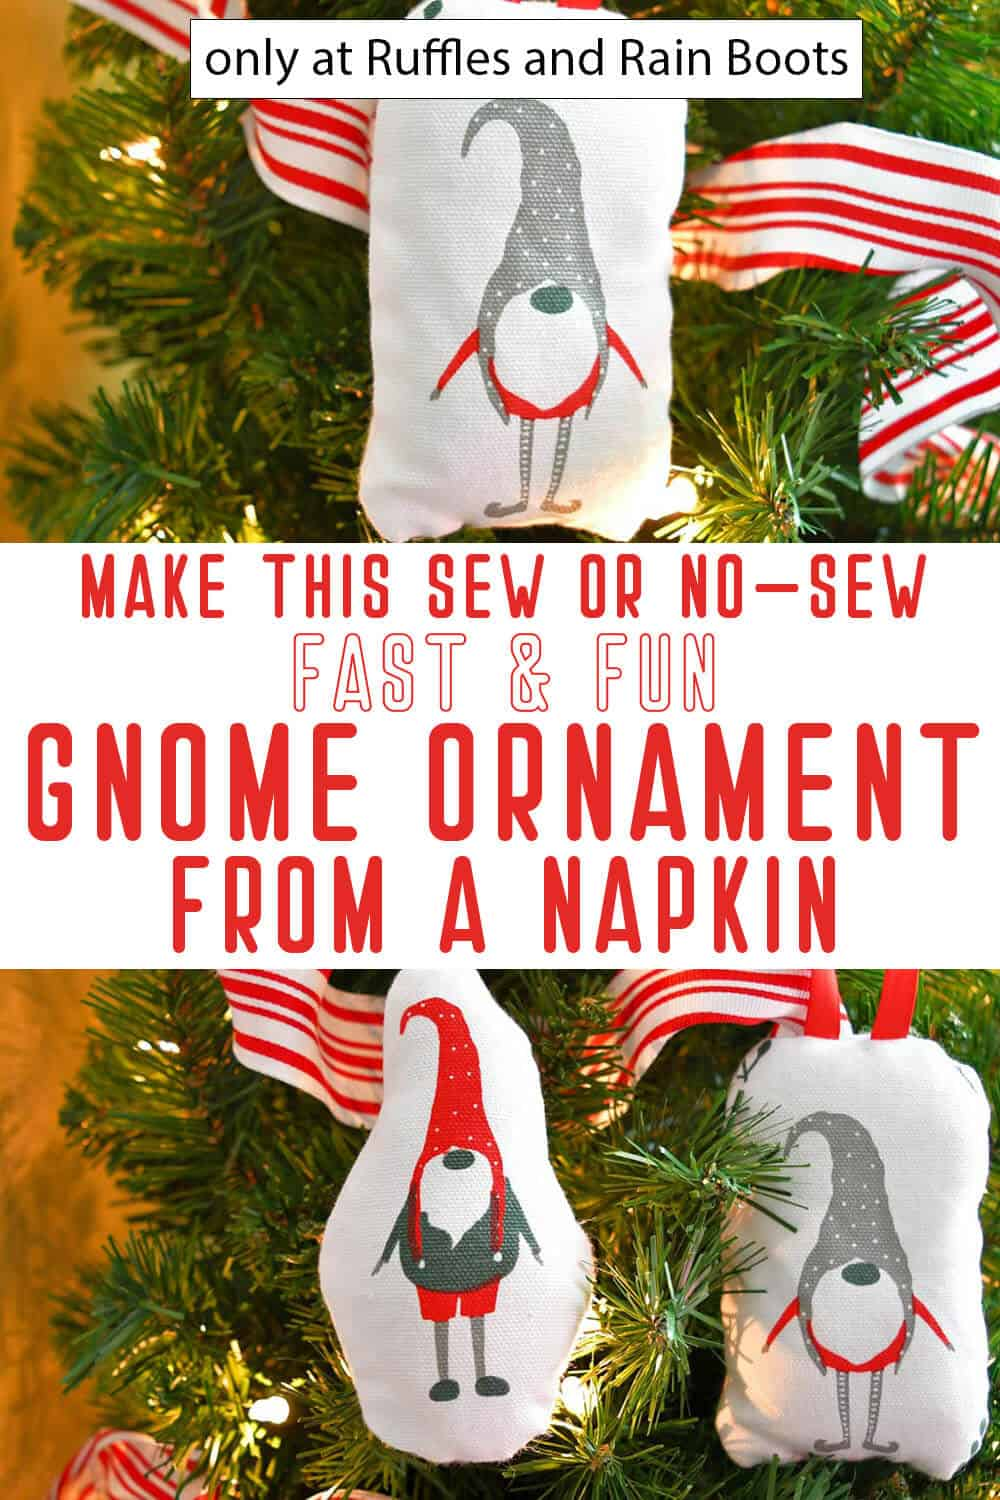 photo collage of dimensional christmas gnome ornament from a napkin with text which reads make this sew or no-sew fast and fun gnome ornament from a napkin